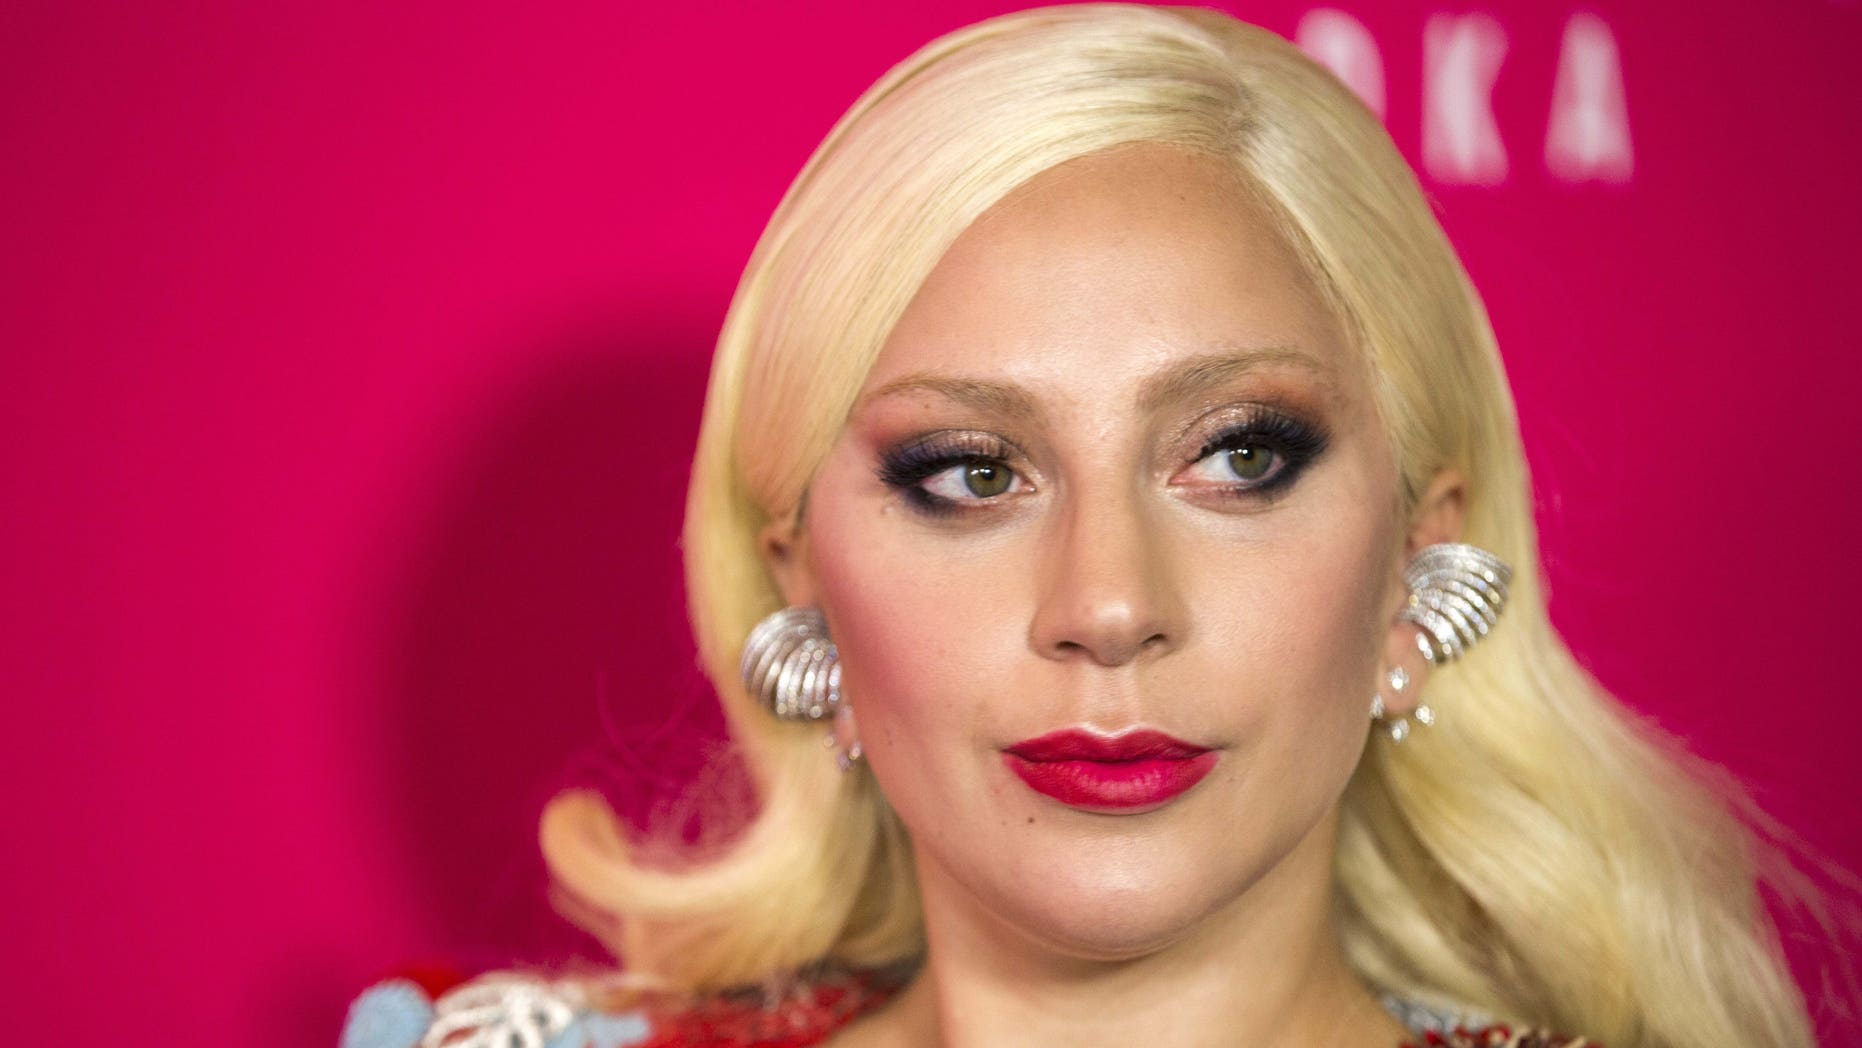 """October 19, 2015. Singer Lady Gaga arrives for the premiere of the film """"Rock the Kasbah"""" in New York."""